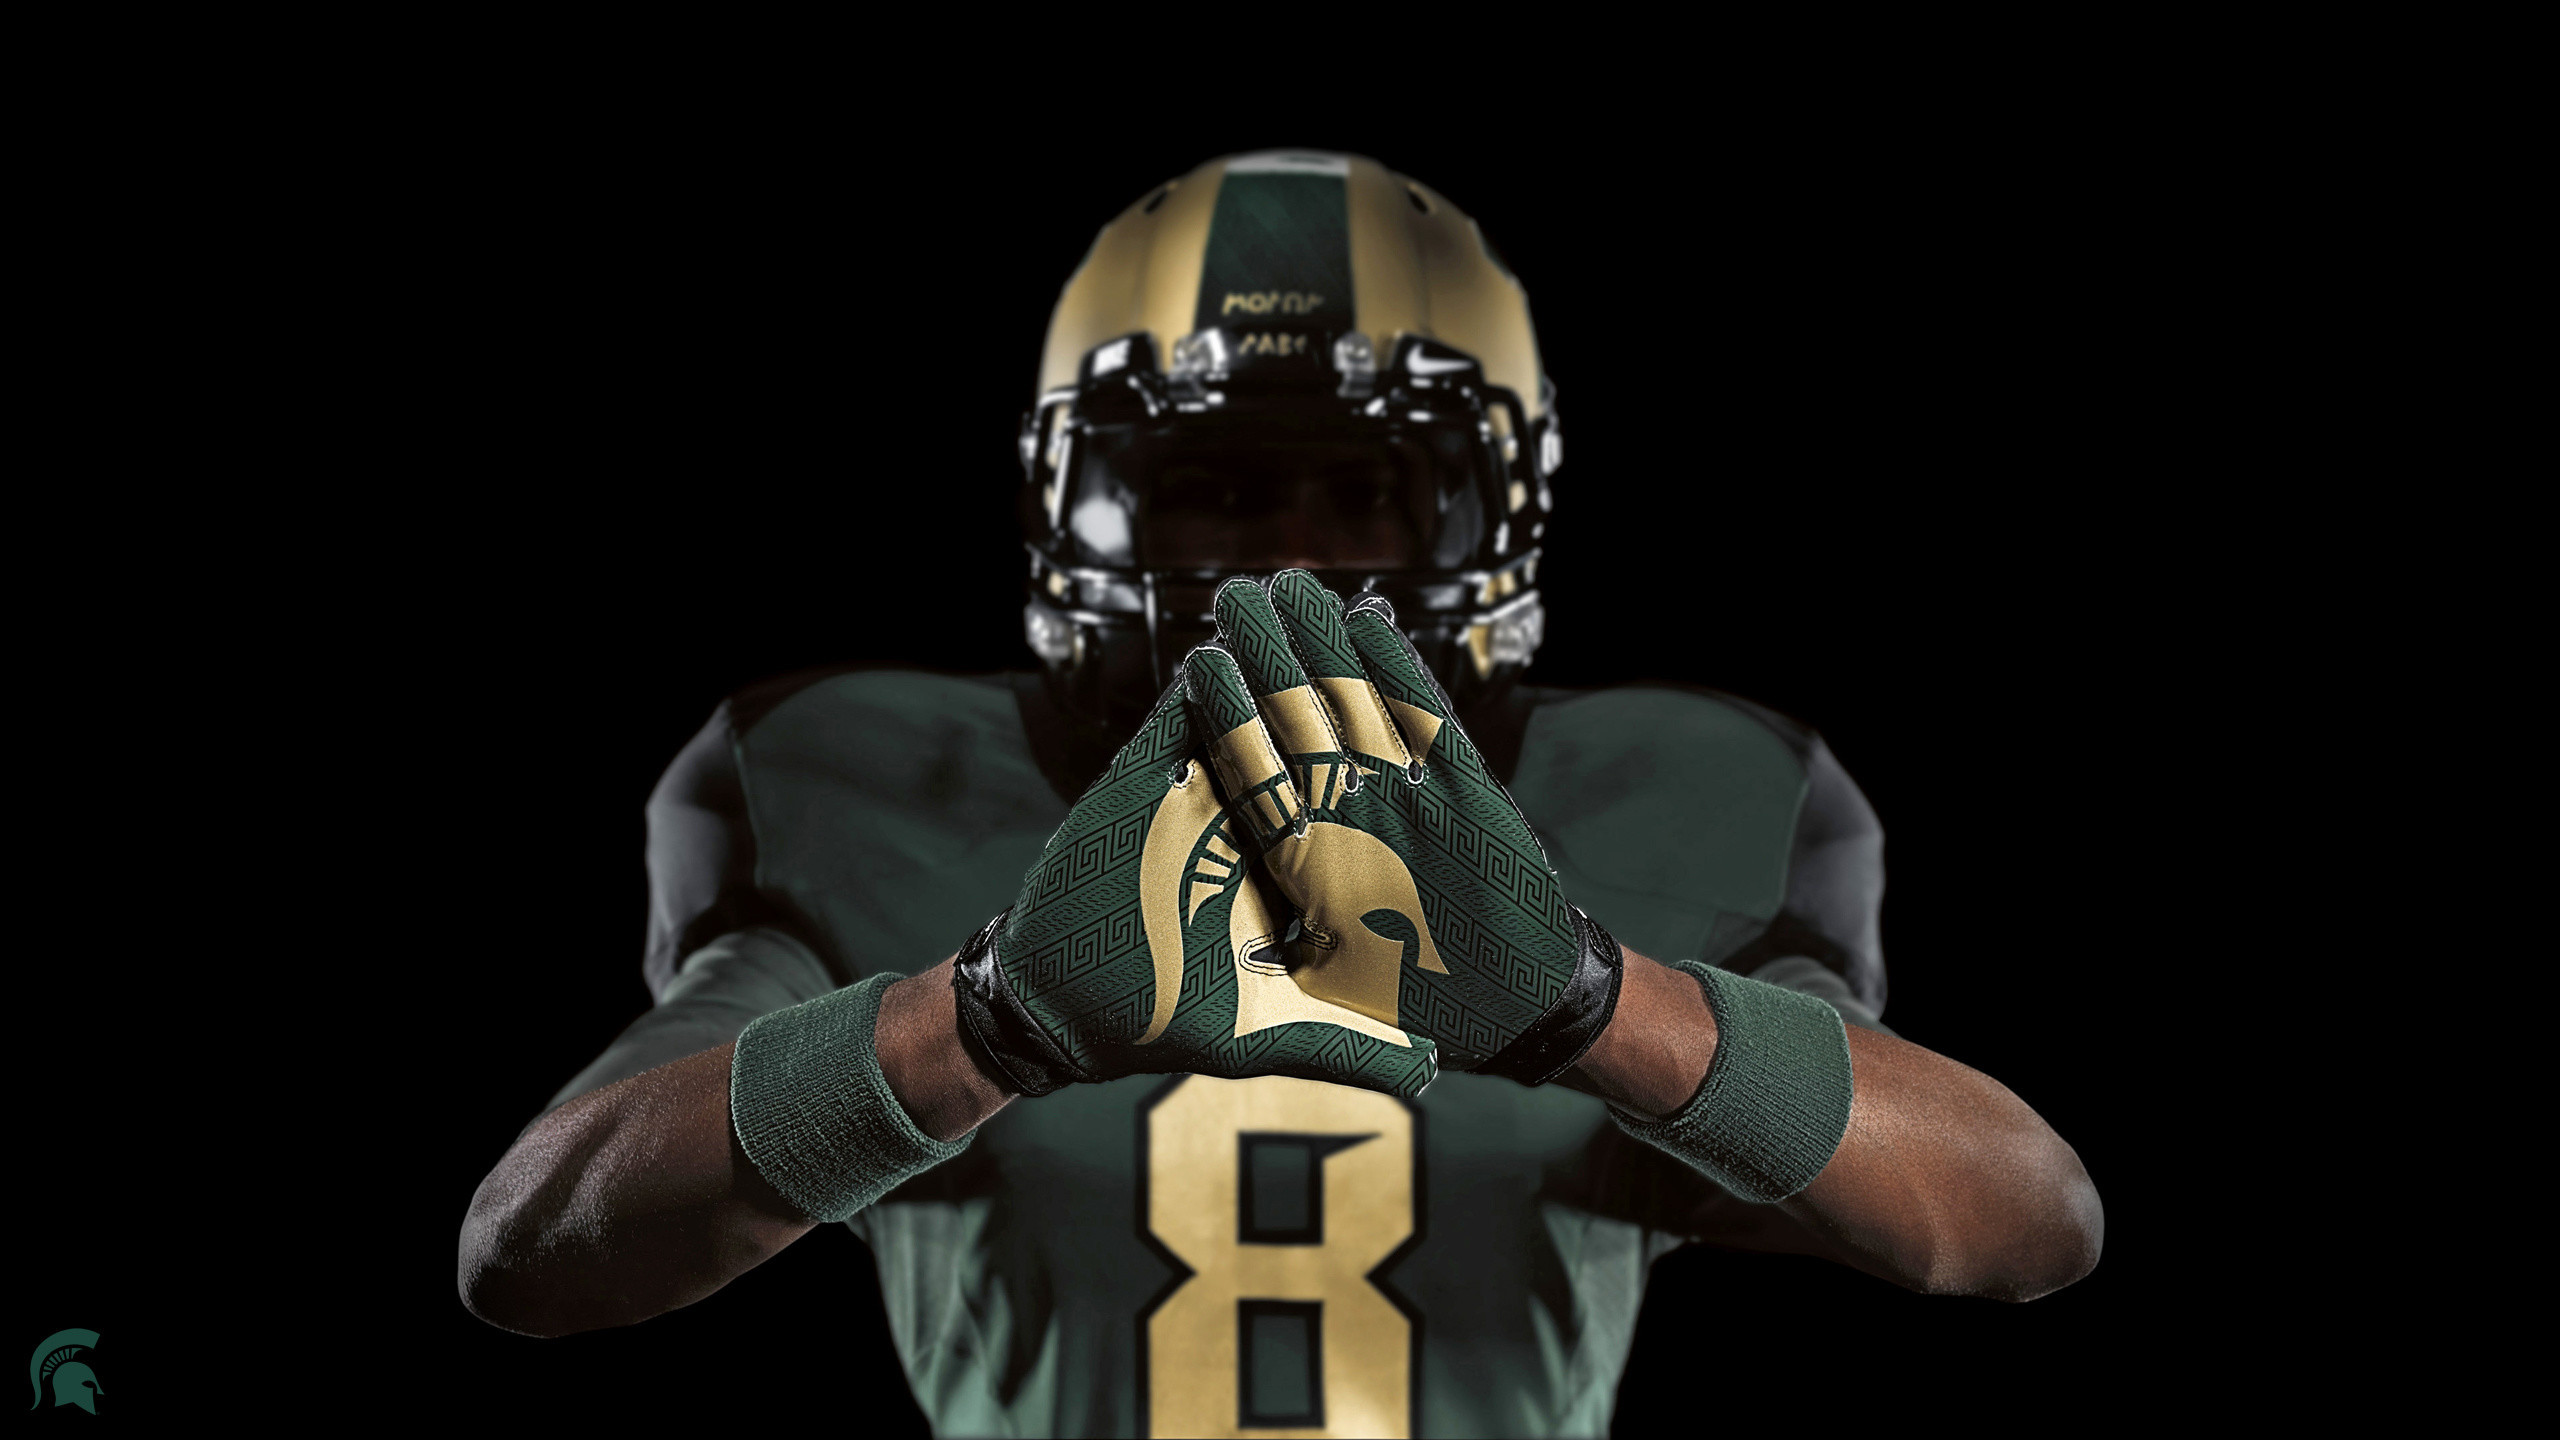 College Football Hd Wallpaper 77 Images